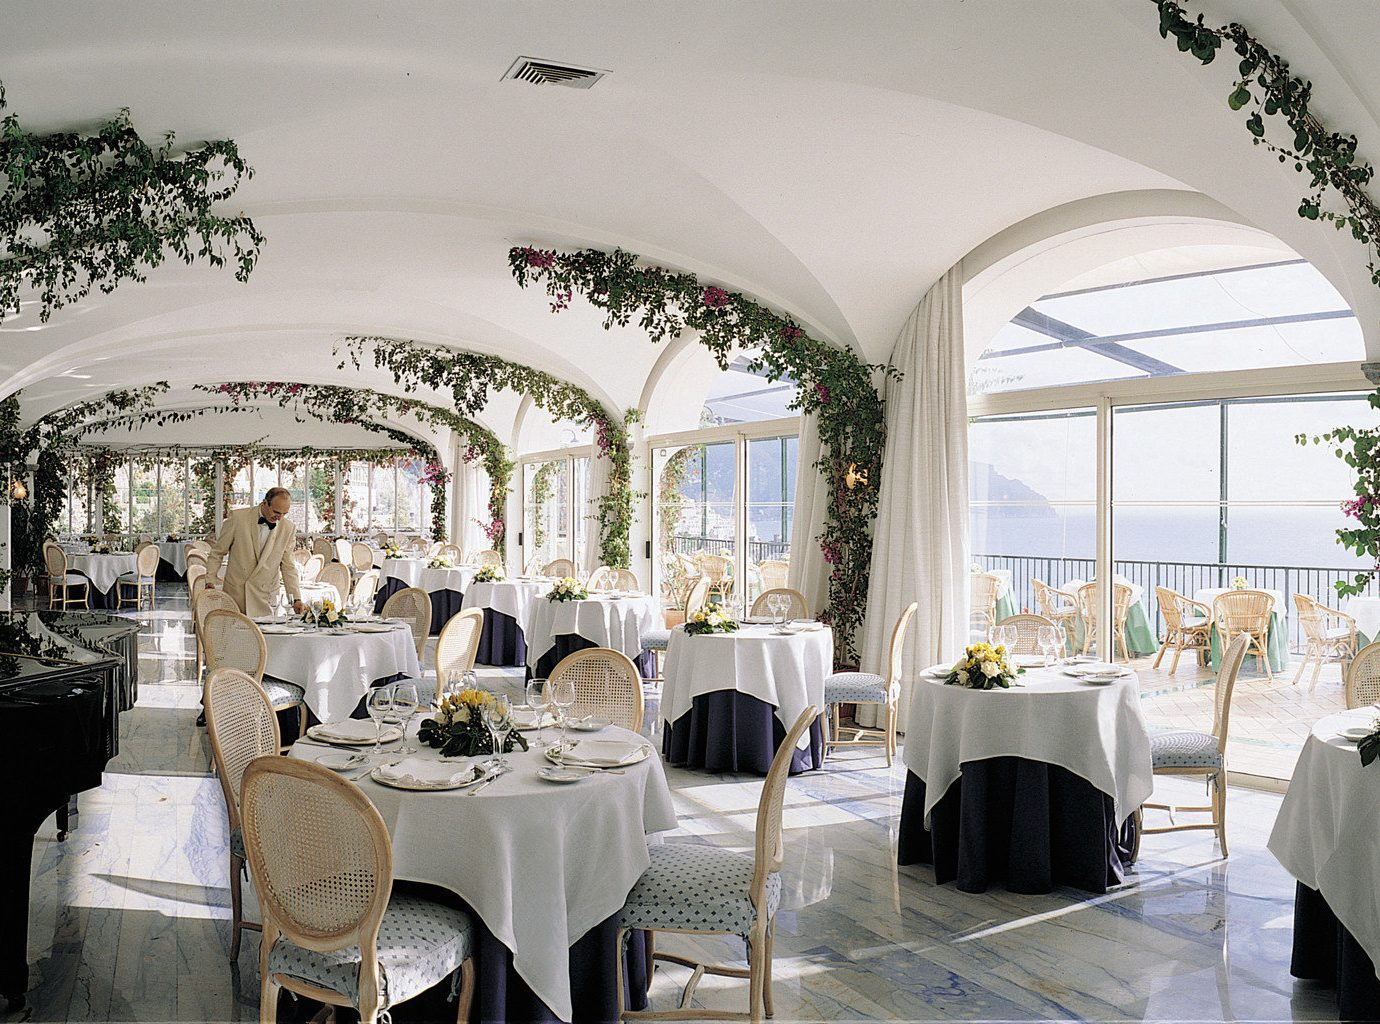 Restaurant at Hotel Santa Caterina, Amalfi